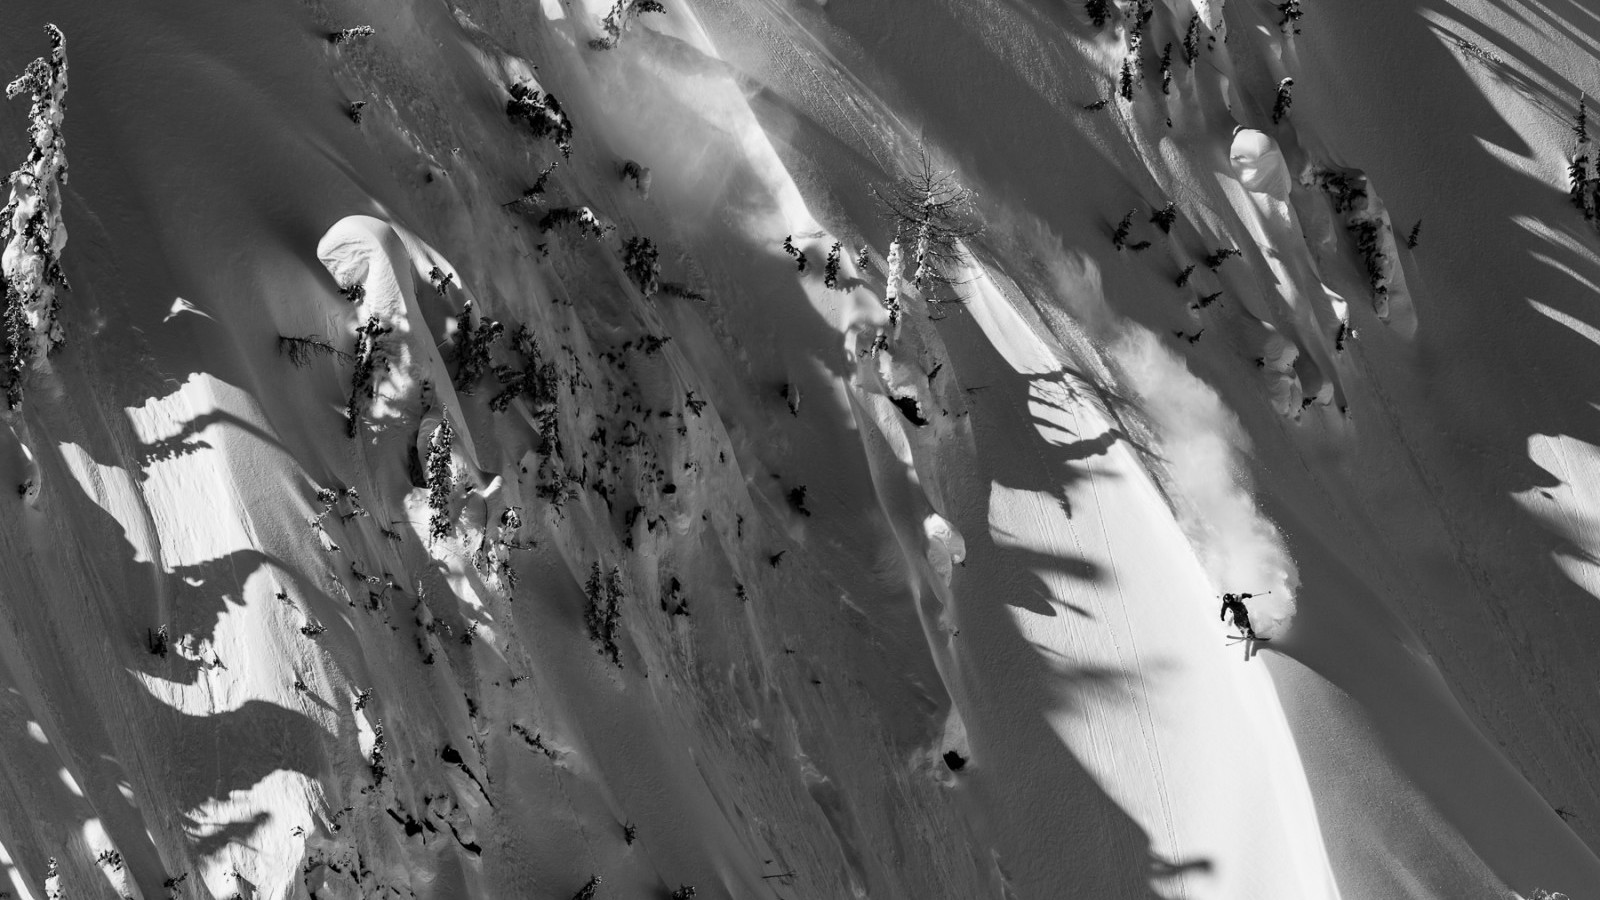 best heli skiing in bc with Mark Fishertgr on Blue River besides Powder Skiing Wallpaper additionally Whistlers Best Attractions Activities likewise About Whistler besides Canada.